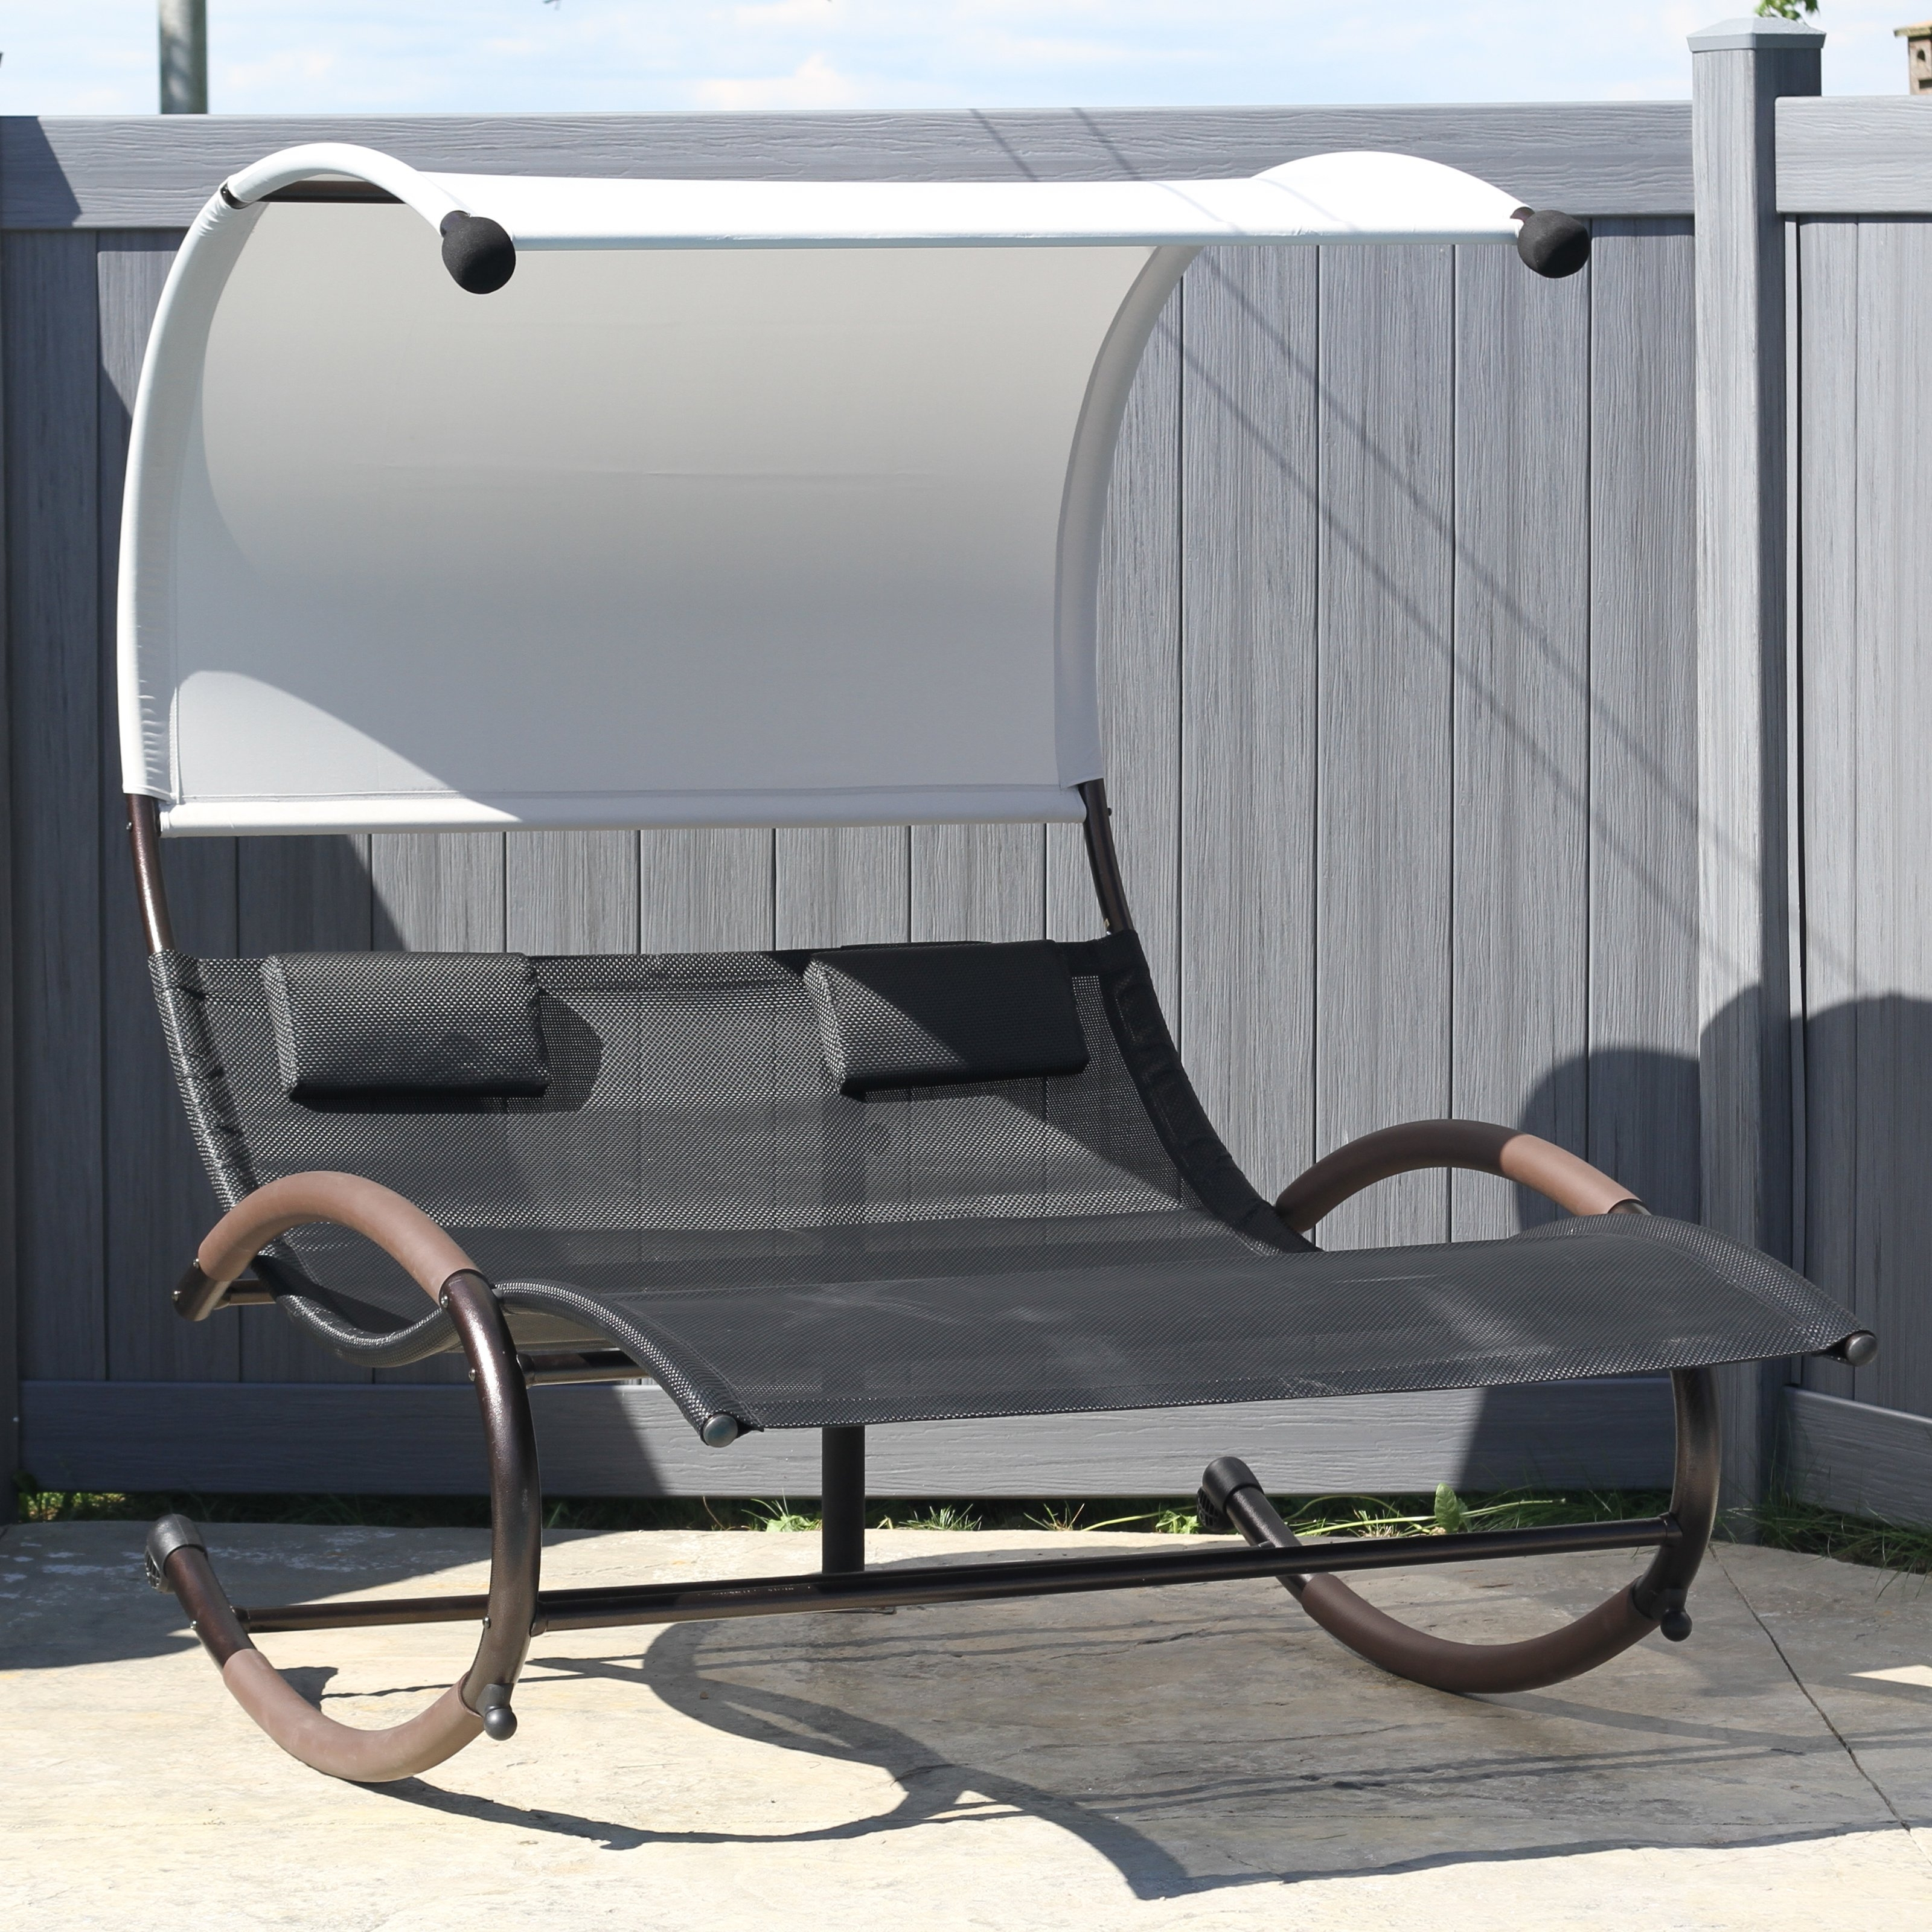 Hayneedle Within Most Up To Date Outdoor Chaise Lounge Chairs With Canopy (View 6 of 15)